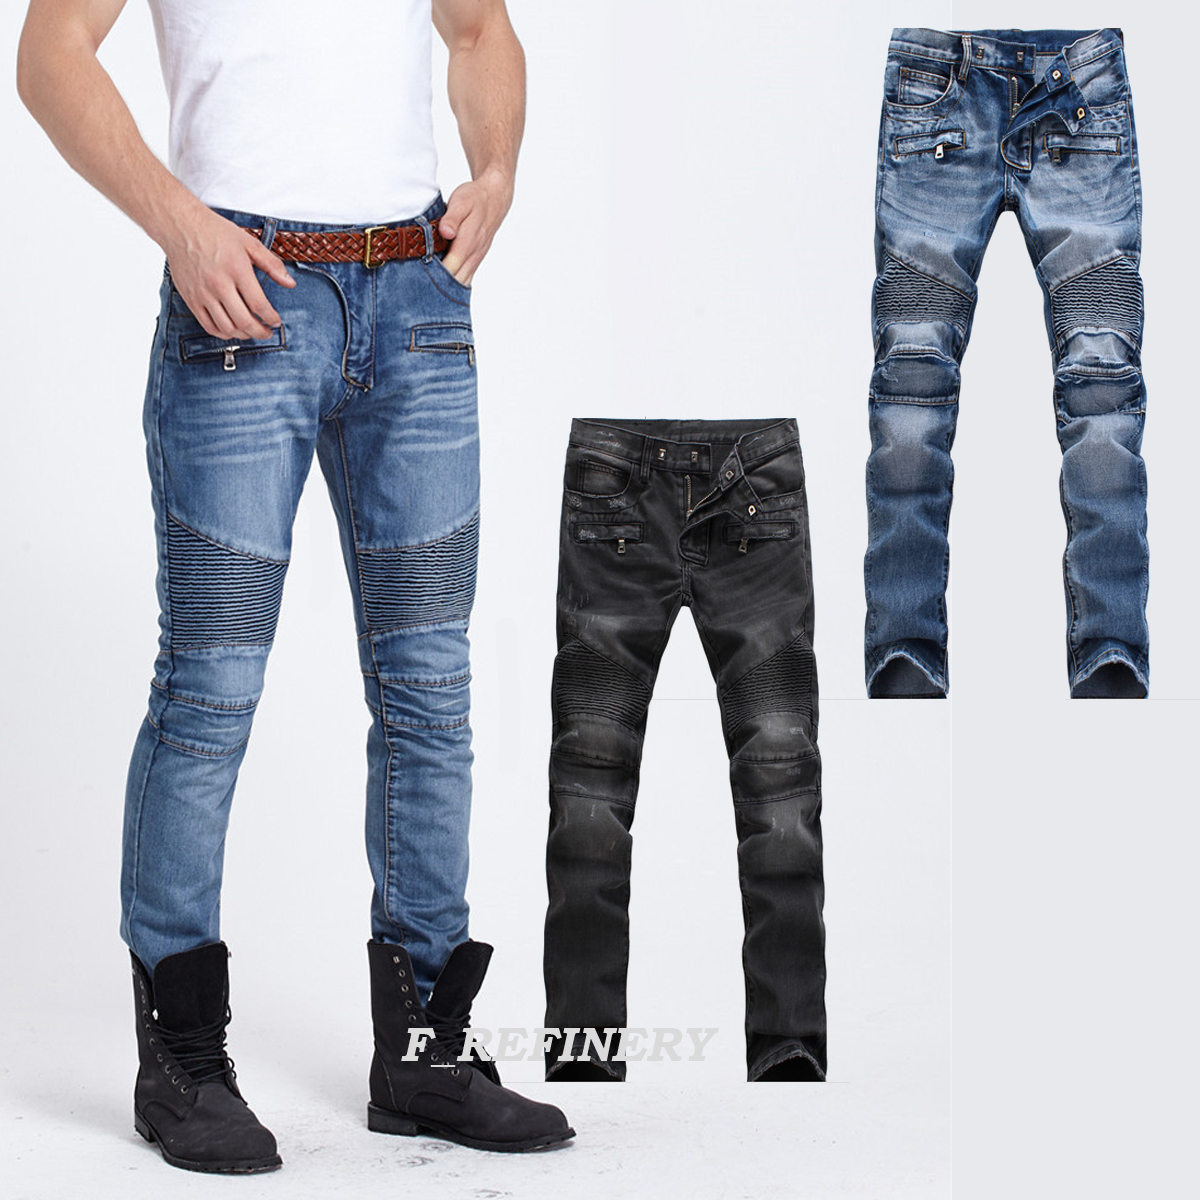 e461b1a9553 Details about Men's Distressed Biker Skinny Slim Fit France Style Jeans  Trousers 2 Colors